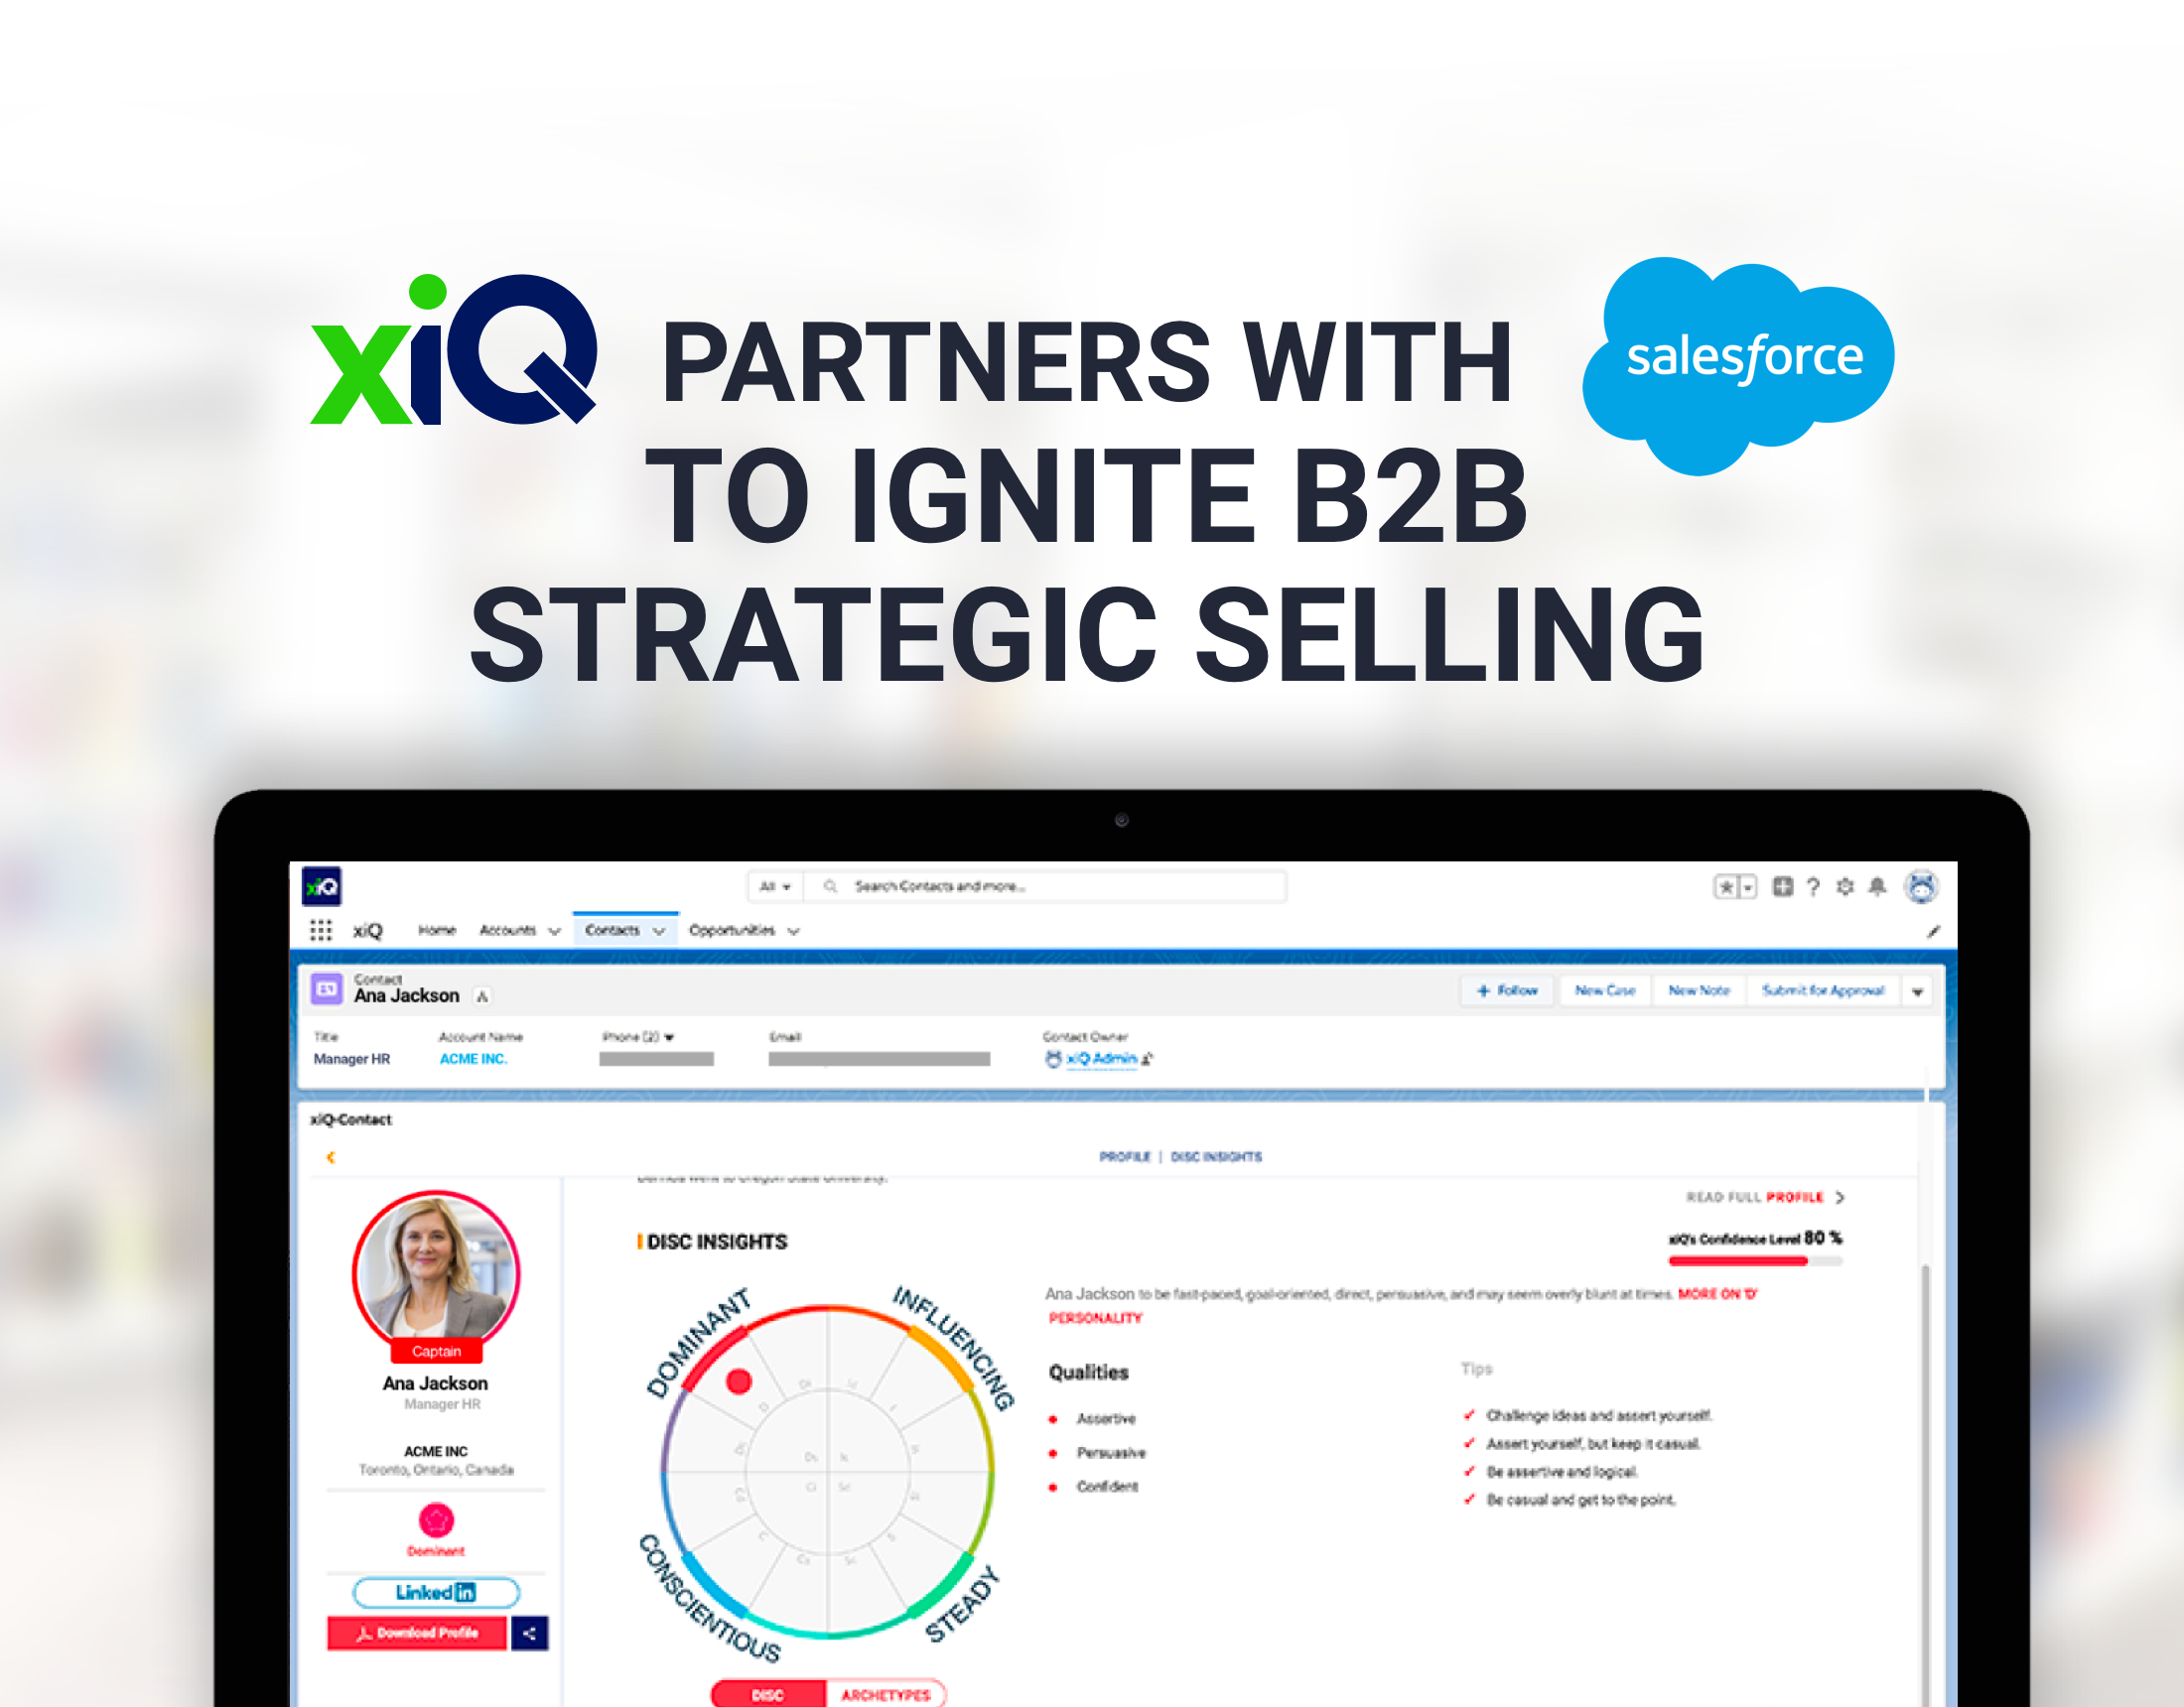 xiQ partners with Salesforce to Ignite B2B Strategic Selling